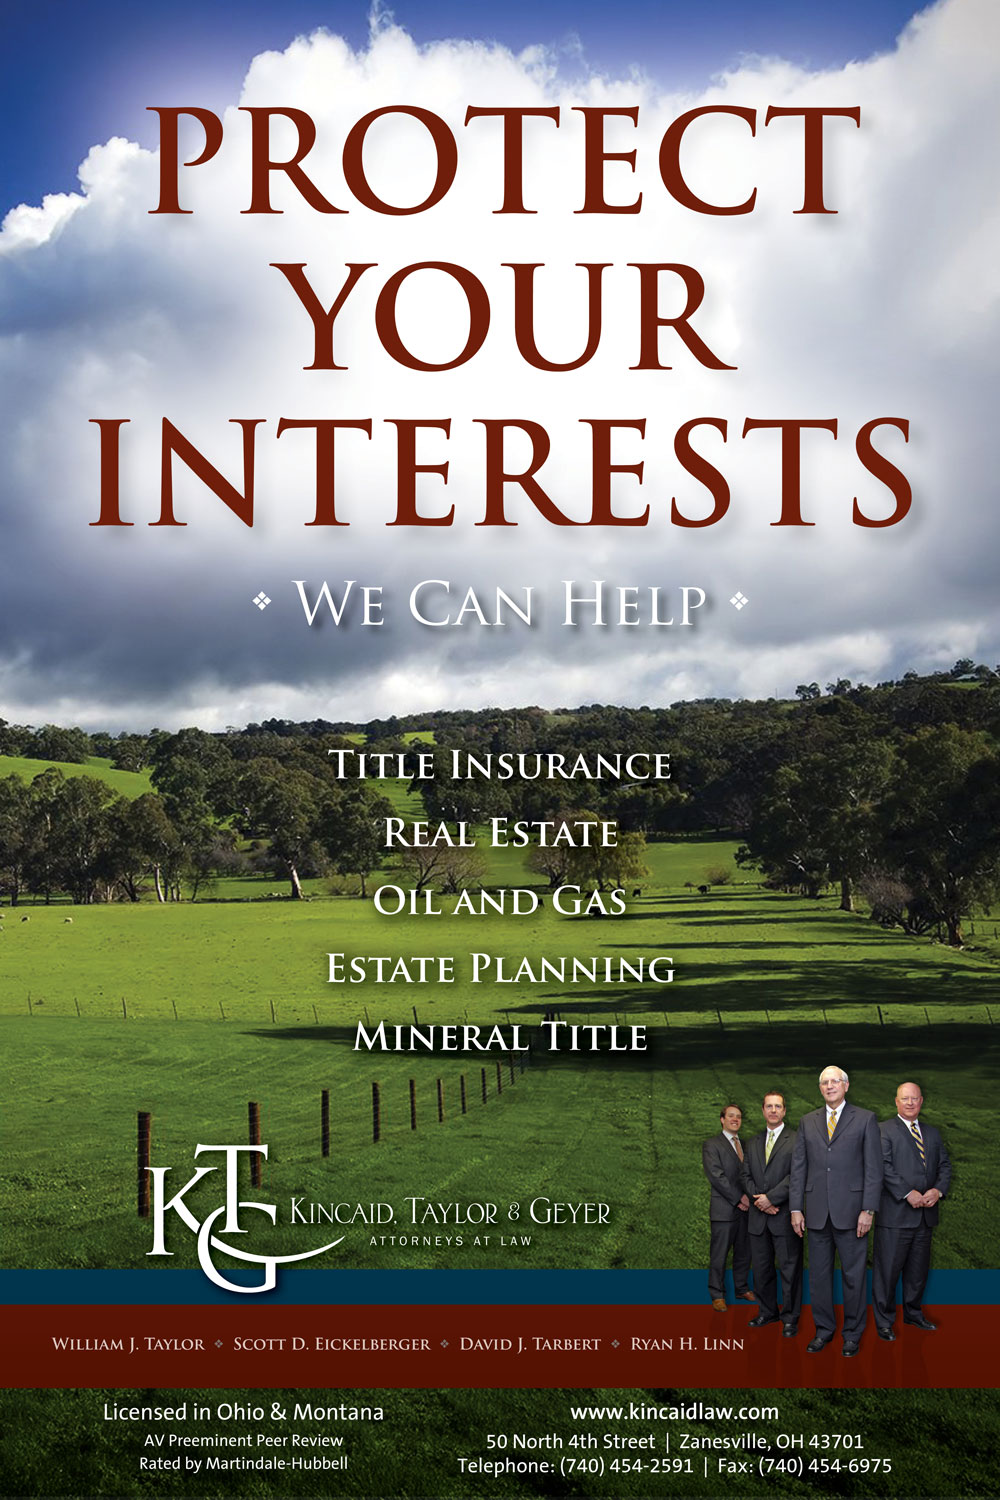 Kincaid Taylor Geyer Title Insurance Real Estate Estate Planning Mineral Title Attorneys Zanesville Ohio